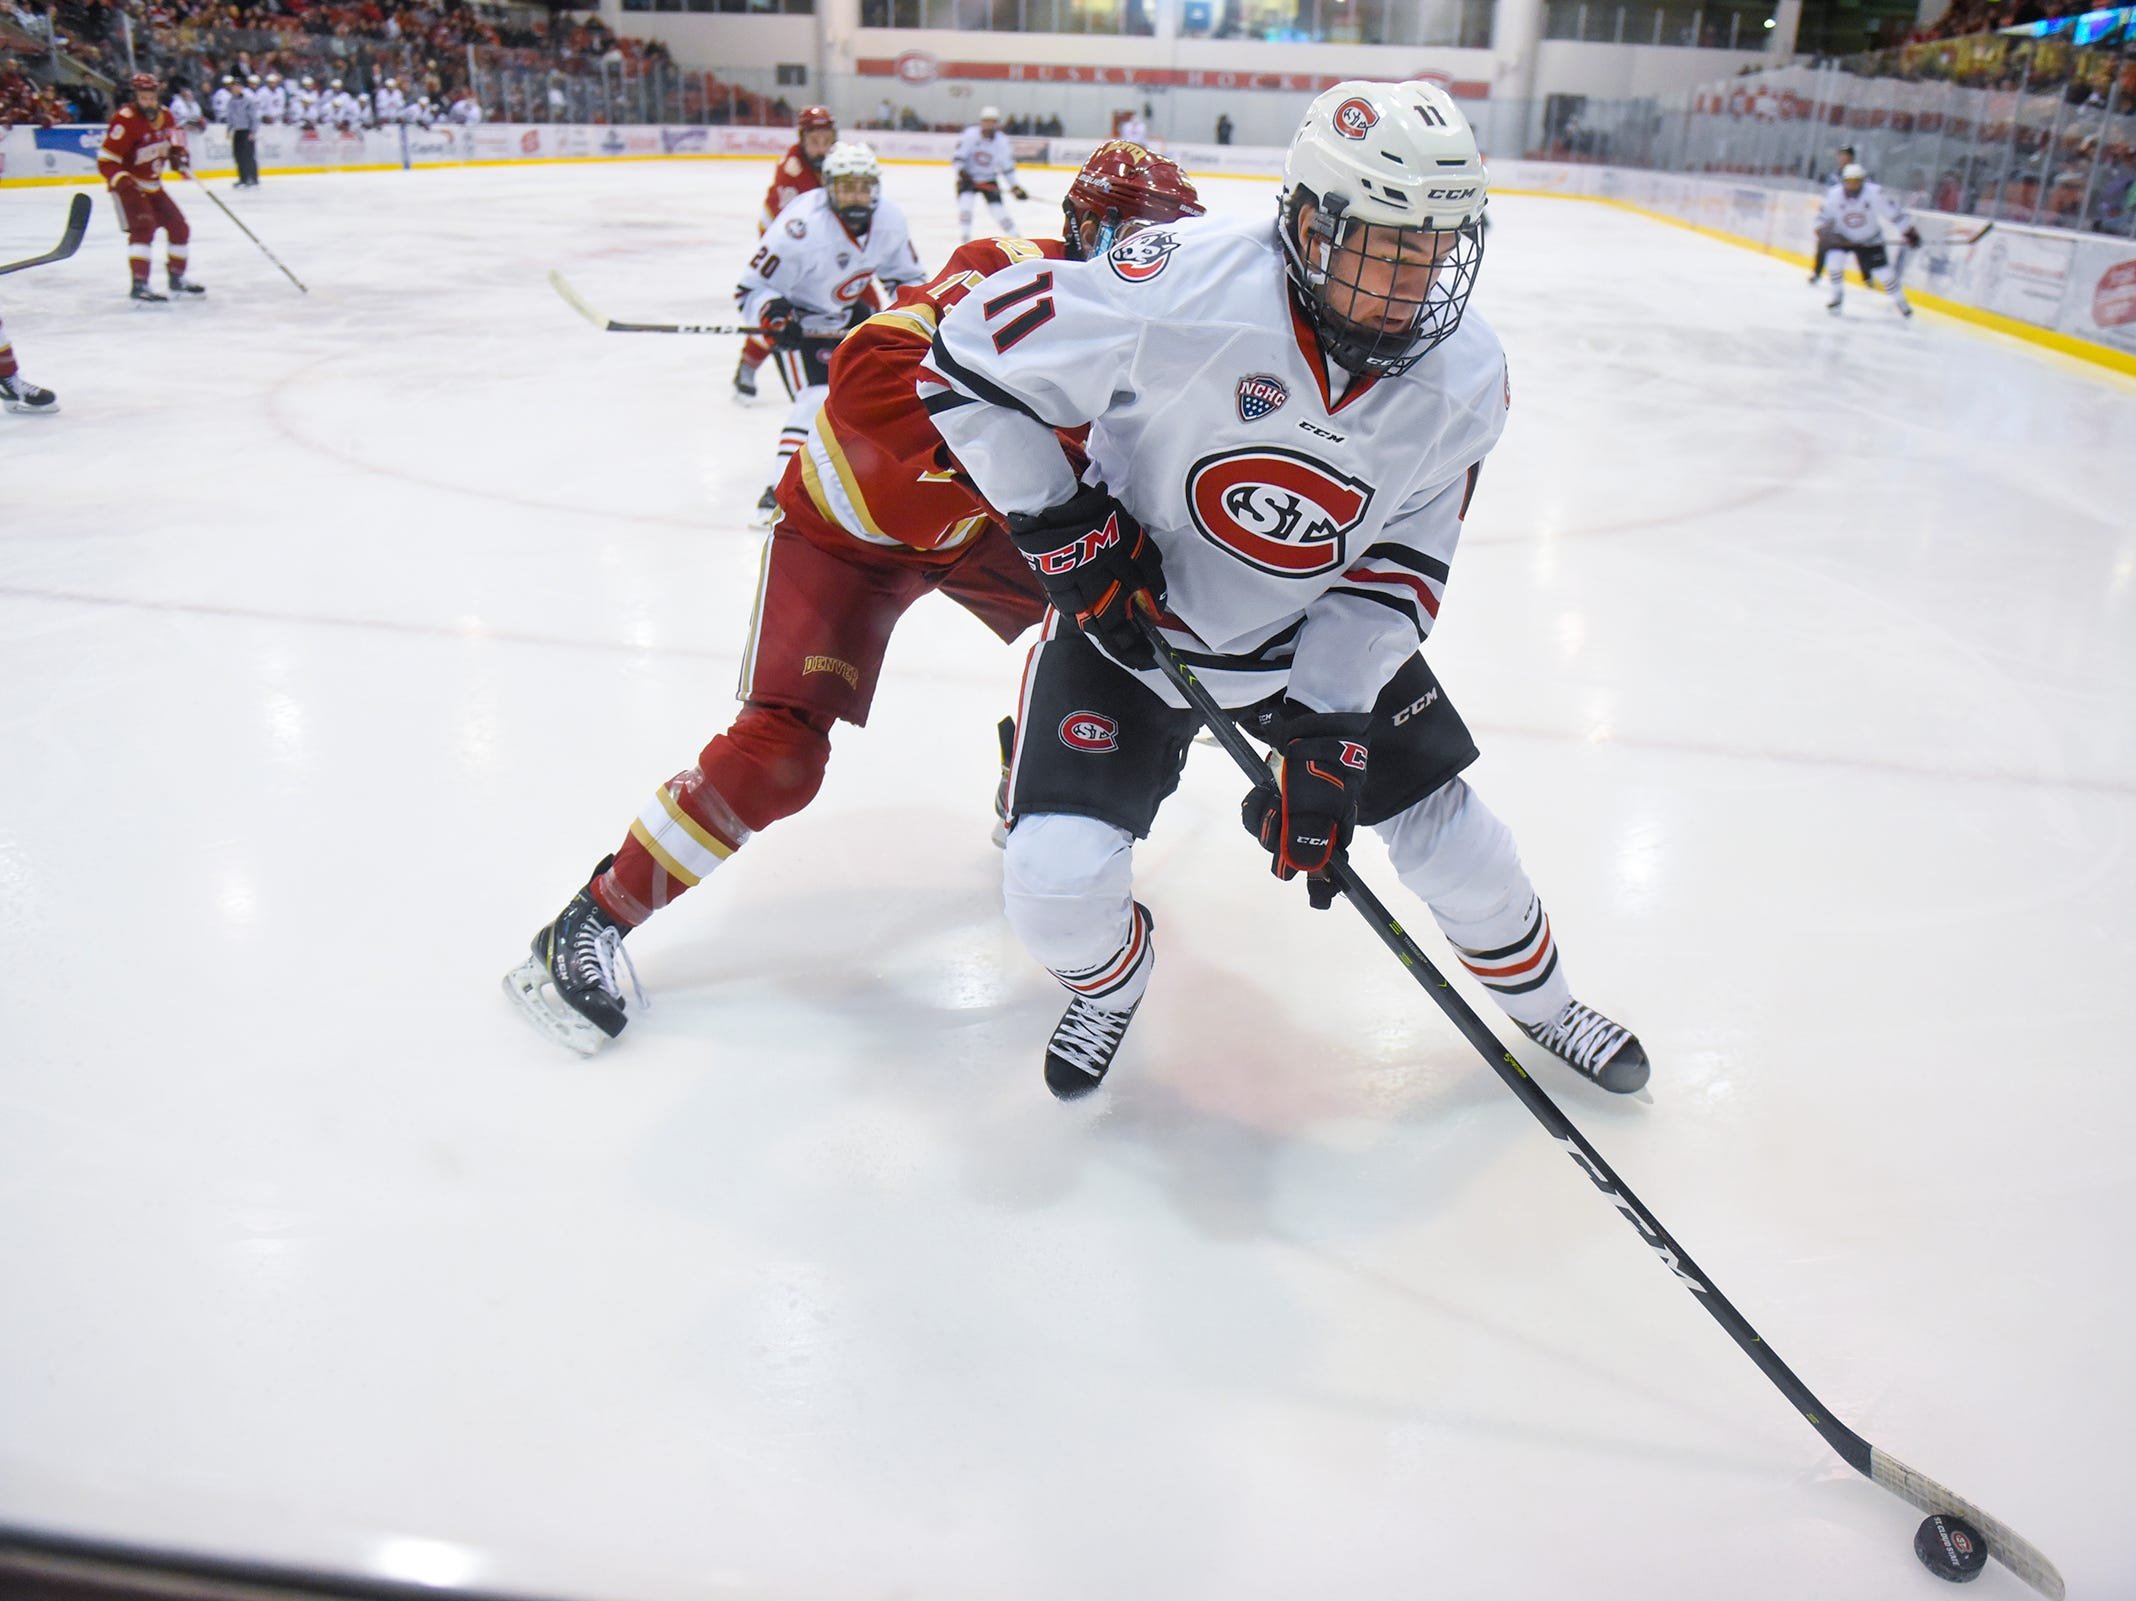 St. Cloud State's Ryan Poehling gets control of the puck along the boards during the first period of the Friday, Nov. 9, game against Denver at the Herb Brooks National Hockey Center in St. Cloud.